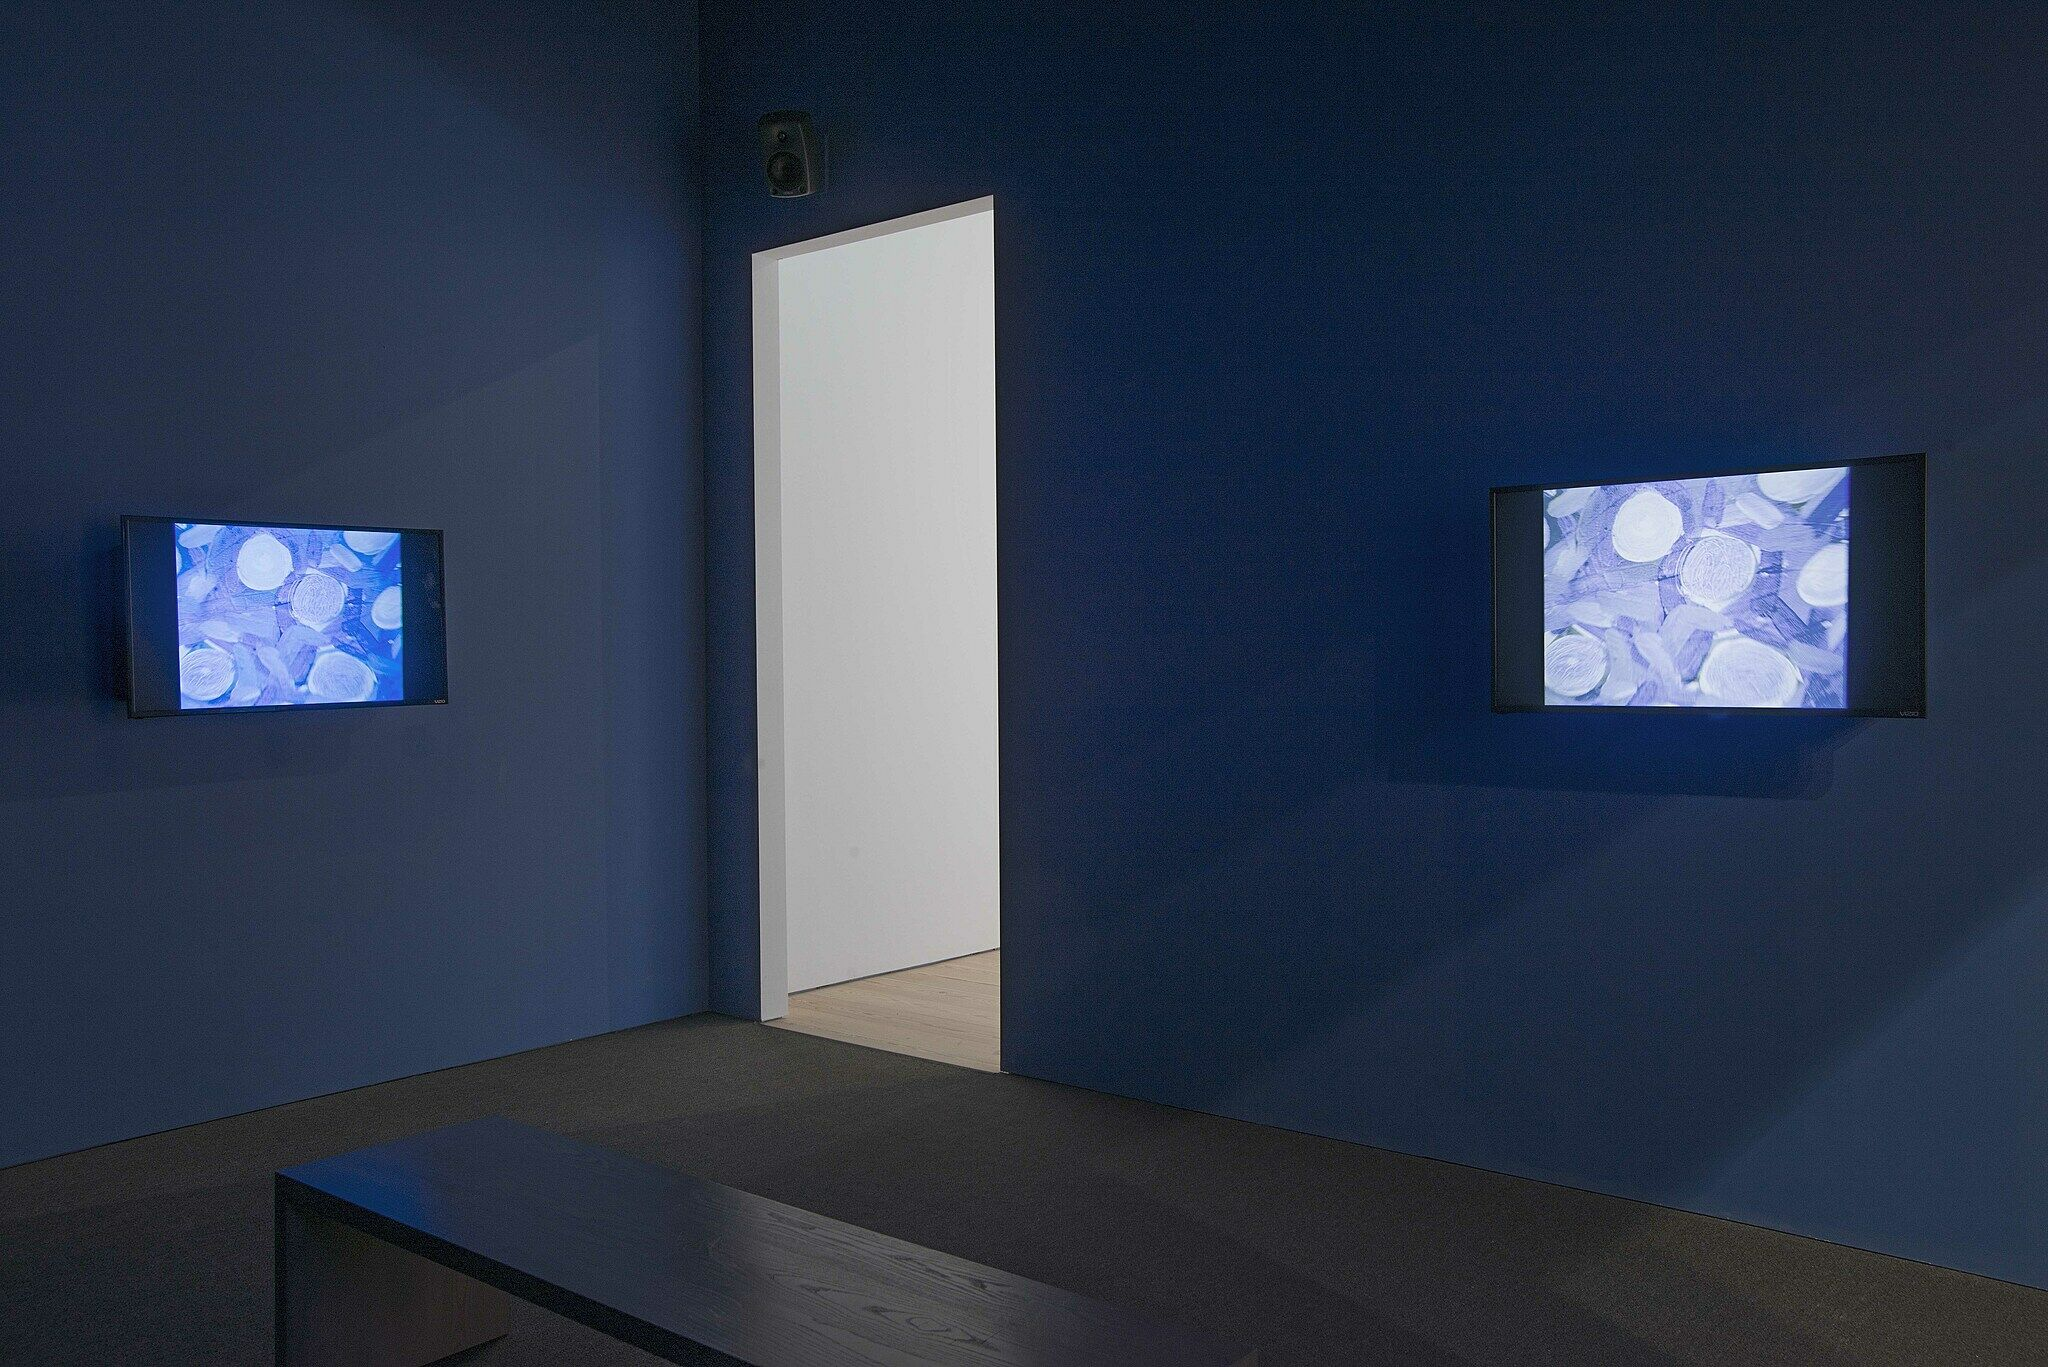 Dark gallery with abstract images on screens on either side of a doorway.